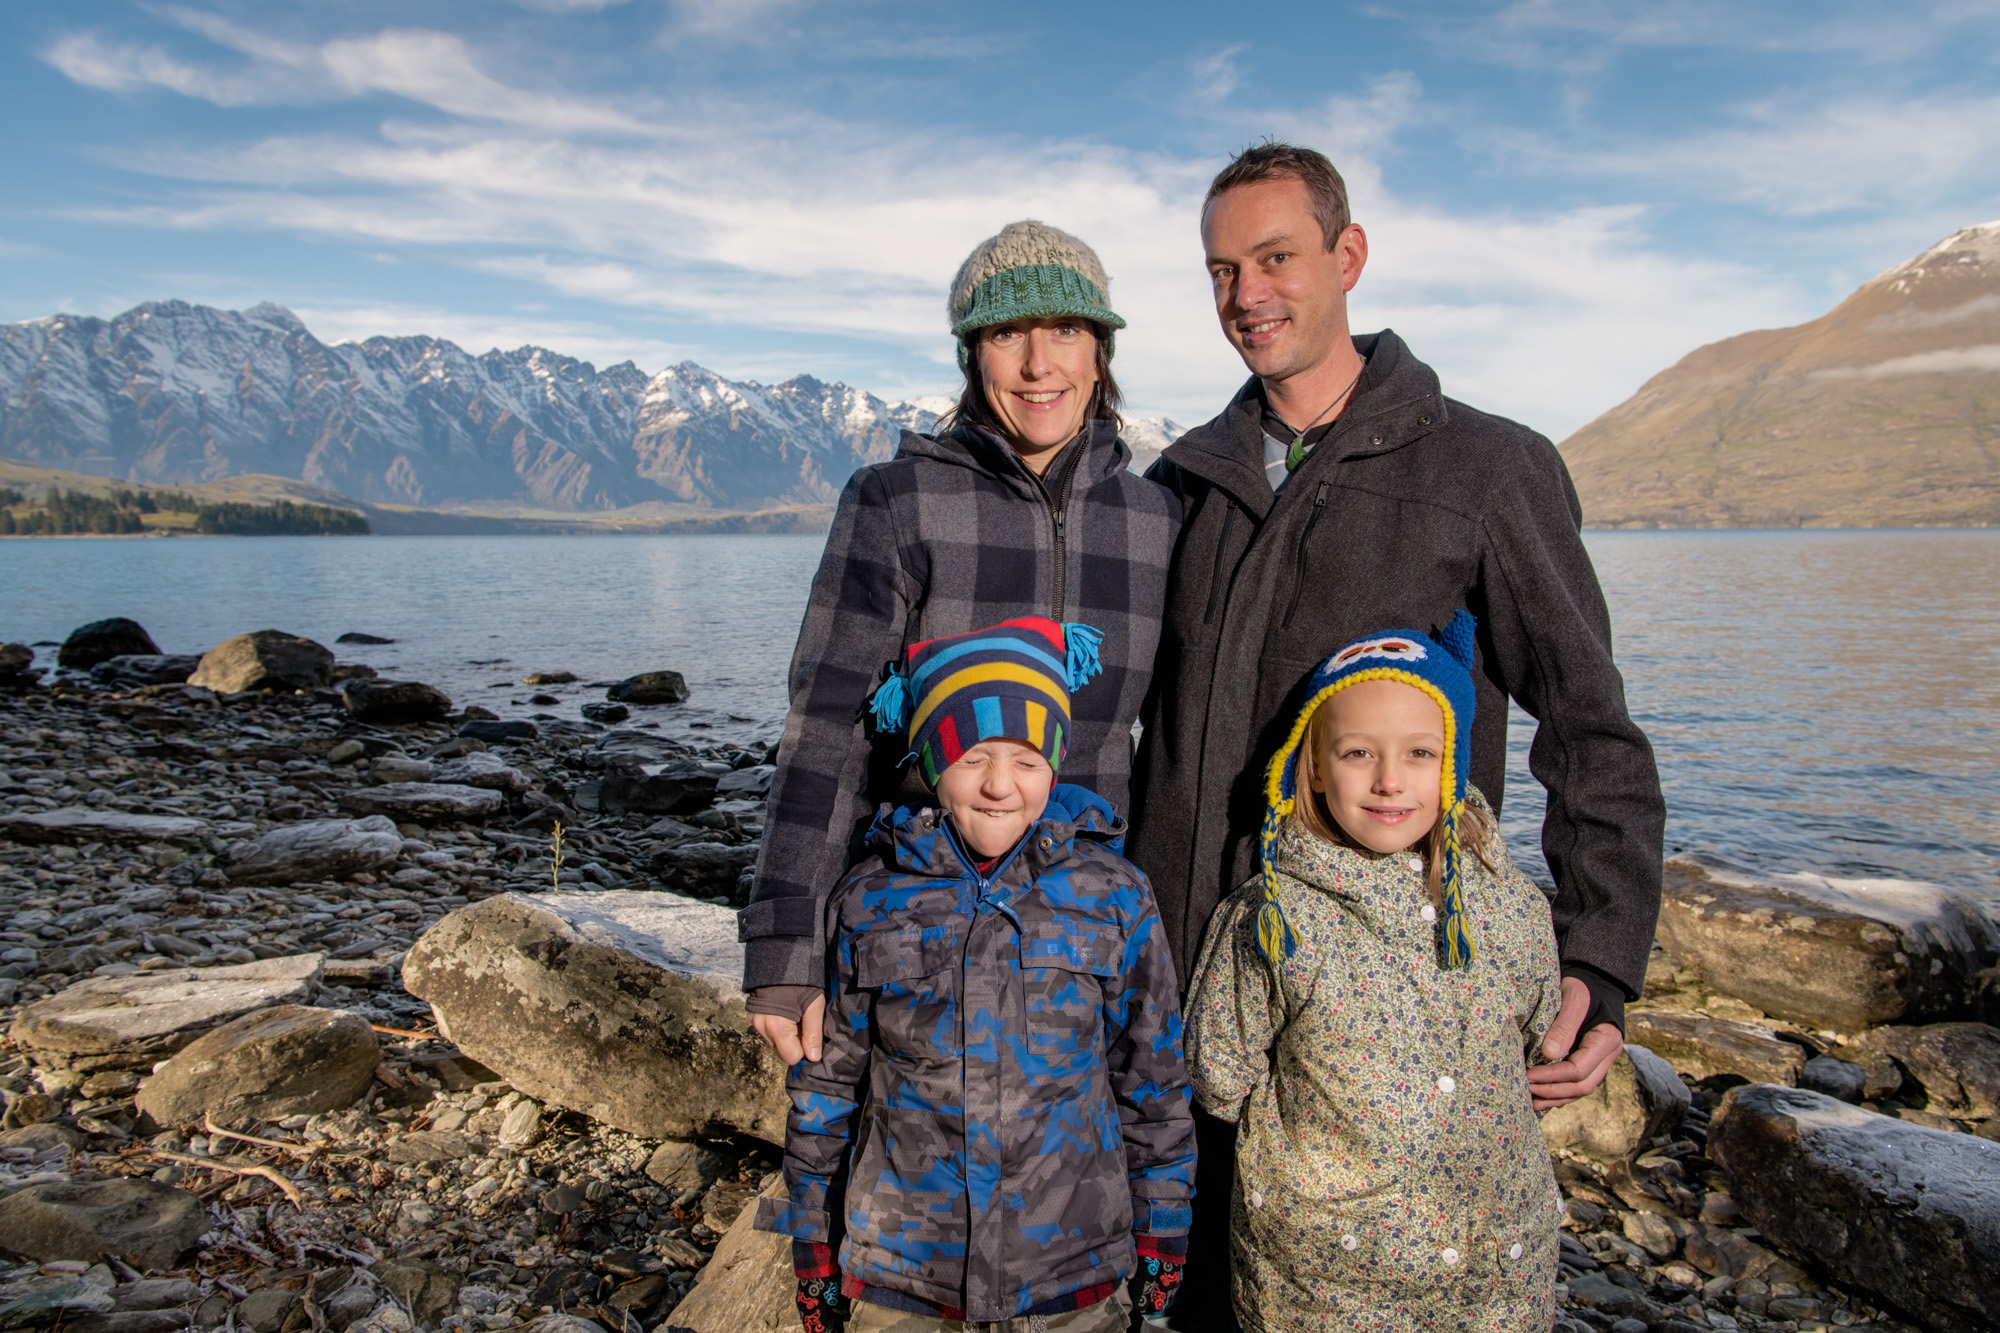 Family portraits at the shore of Lake Wakatipu, The Remarkables in the background